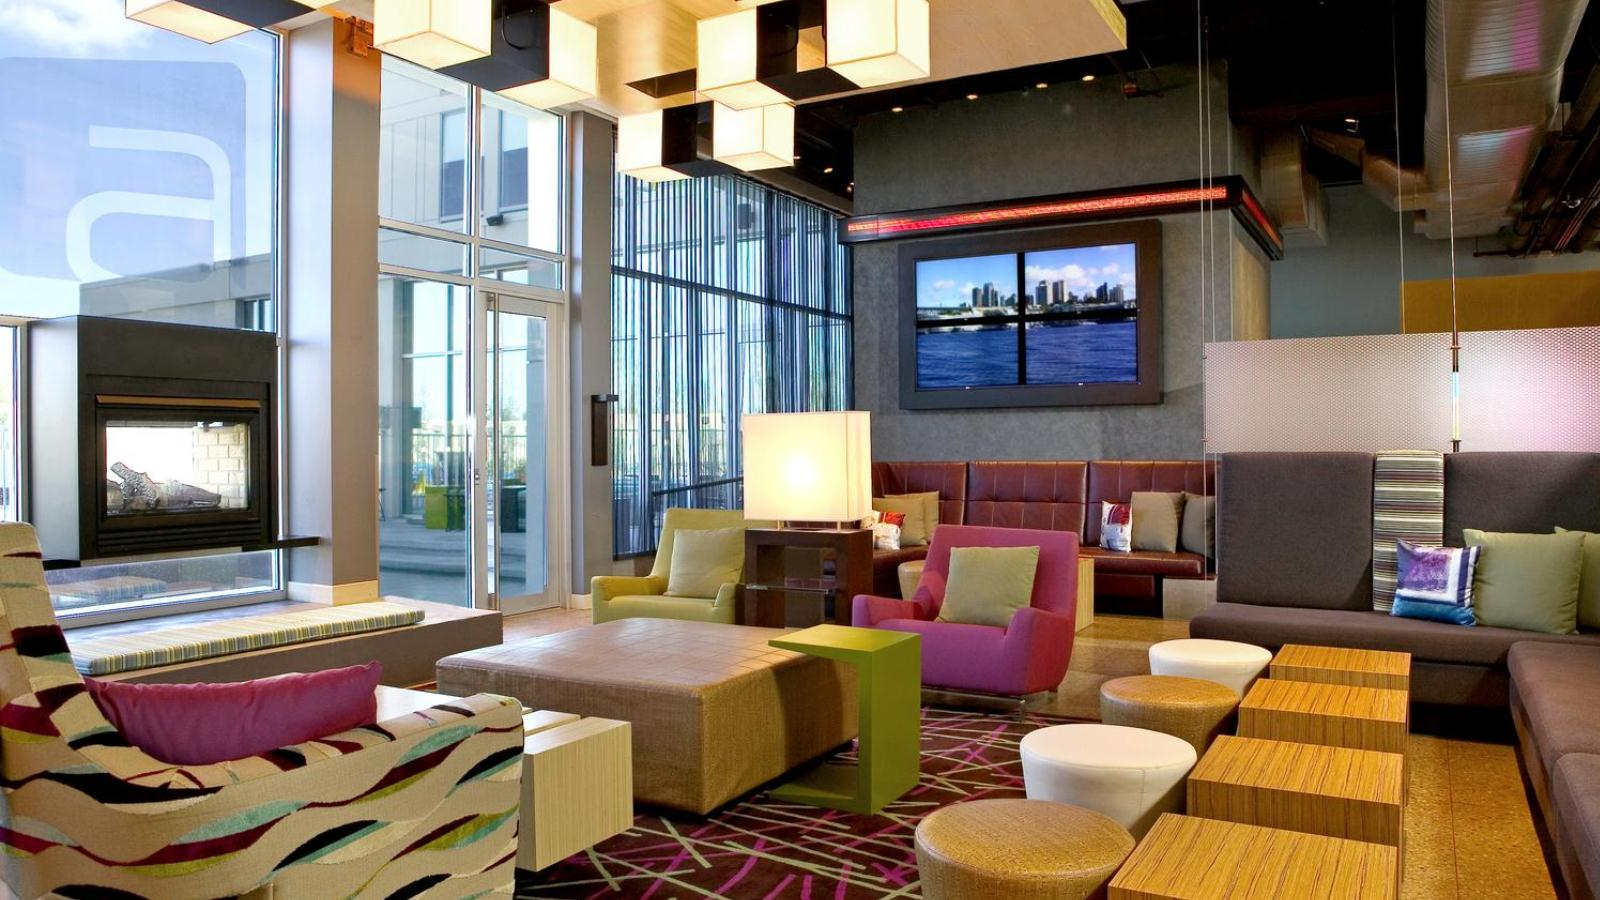 Bentonville Meeting Rooms - Special Events